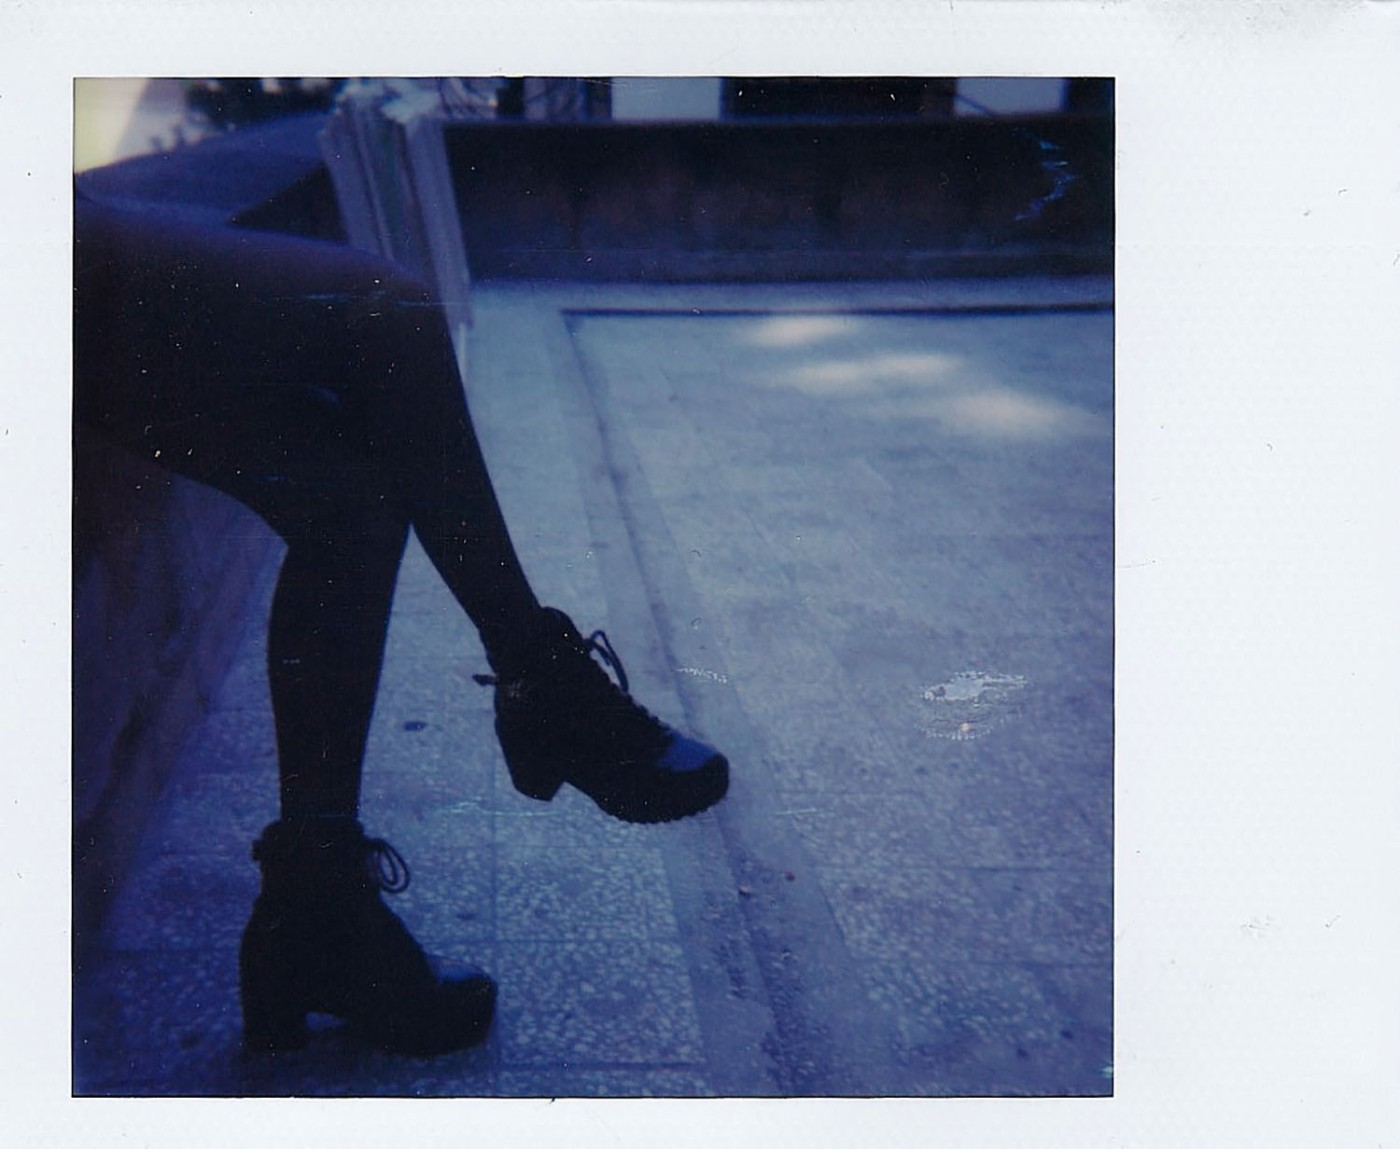 A polaroid photograph by Andreea Andrei as published in Photo/Foto Magazine